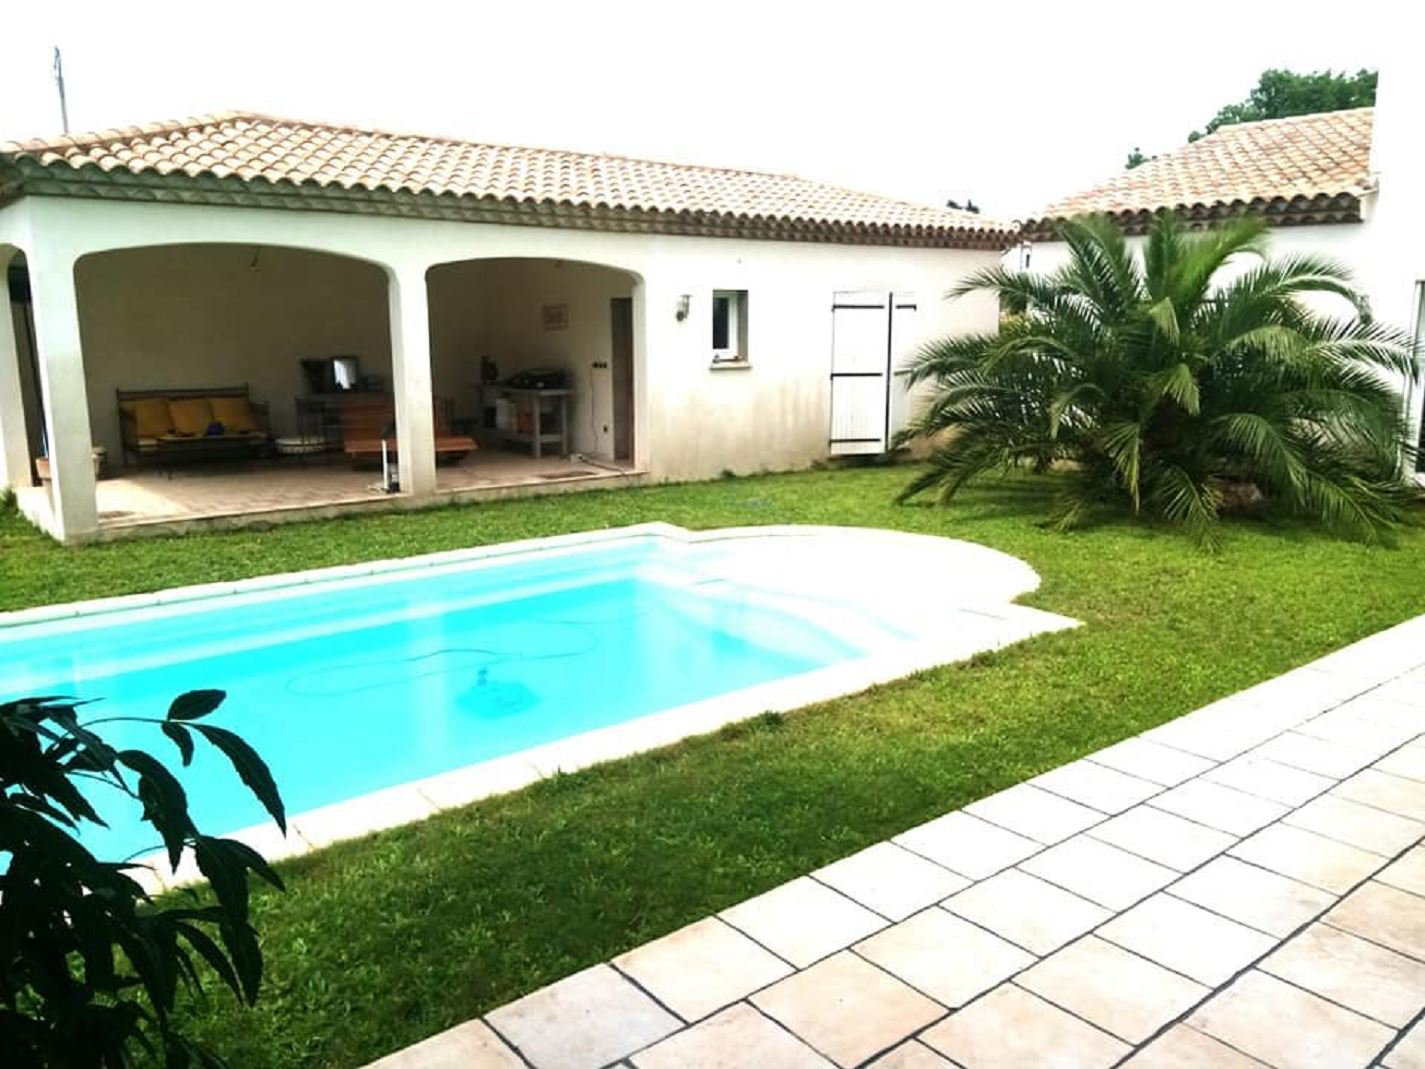 Villa with pool and a big garden close to Béziers